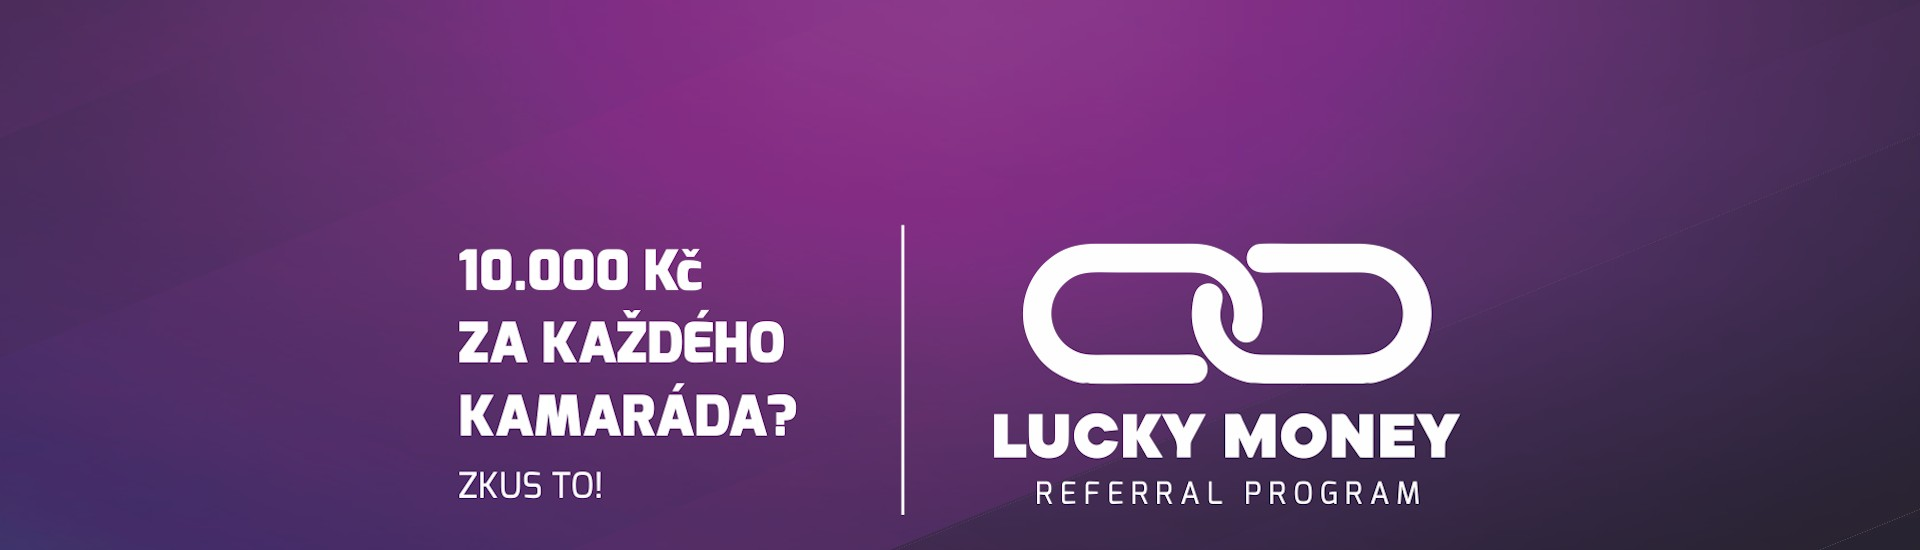 referral_lucky_money_rebuy_stars_web_slider_2-1